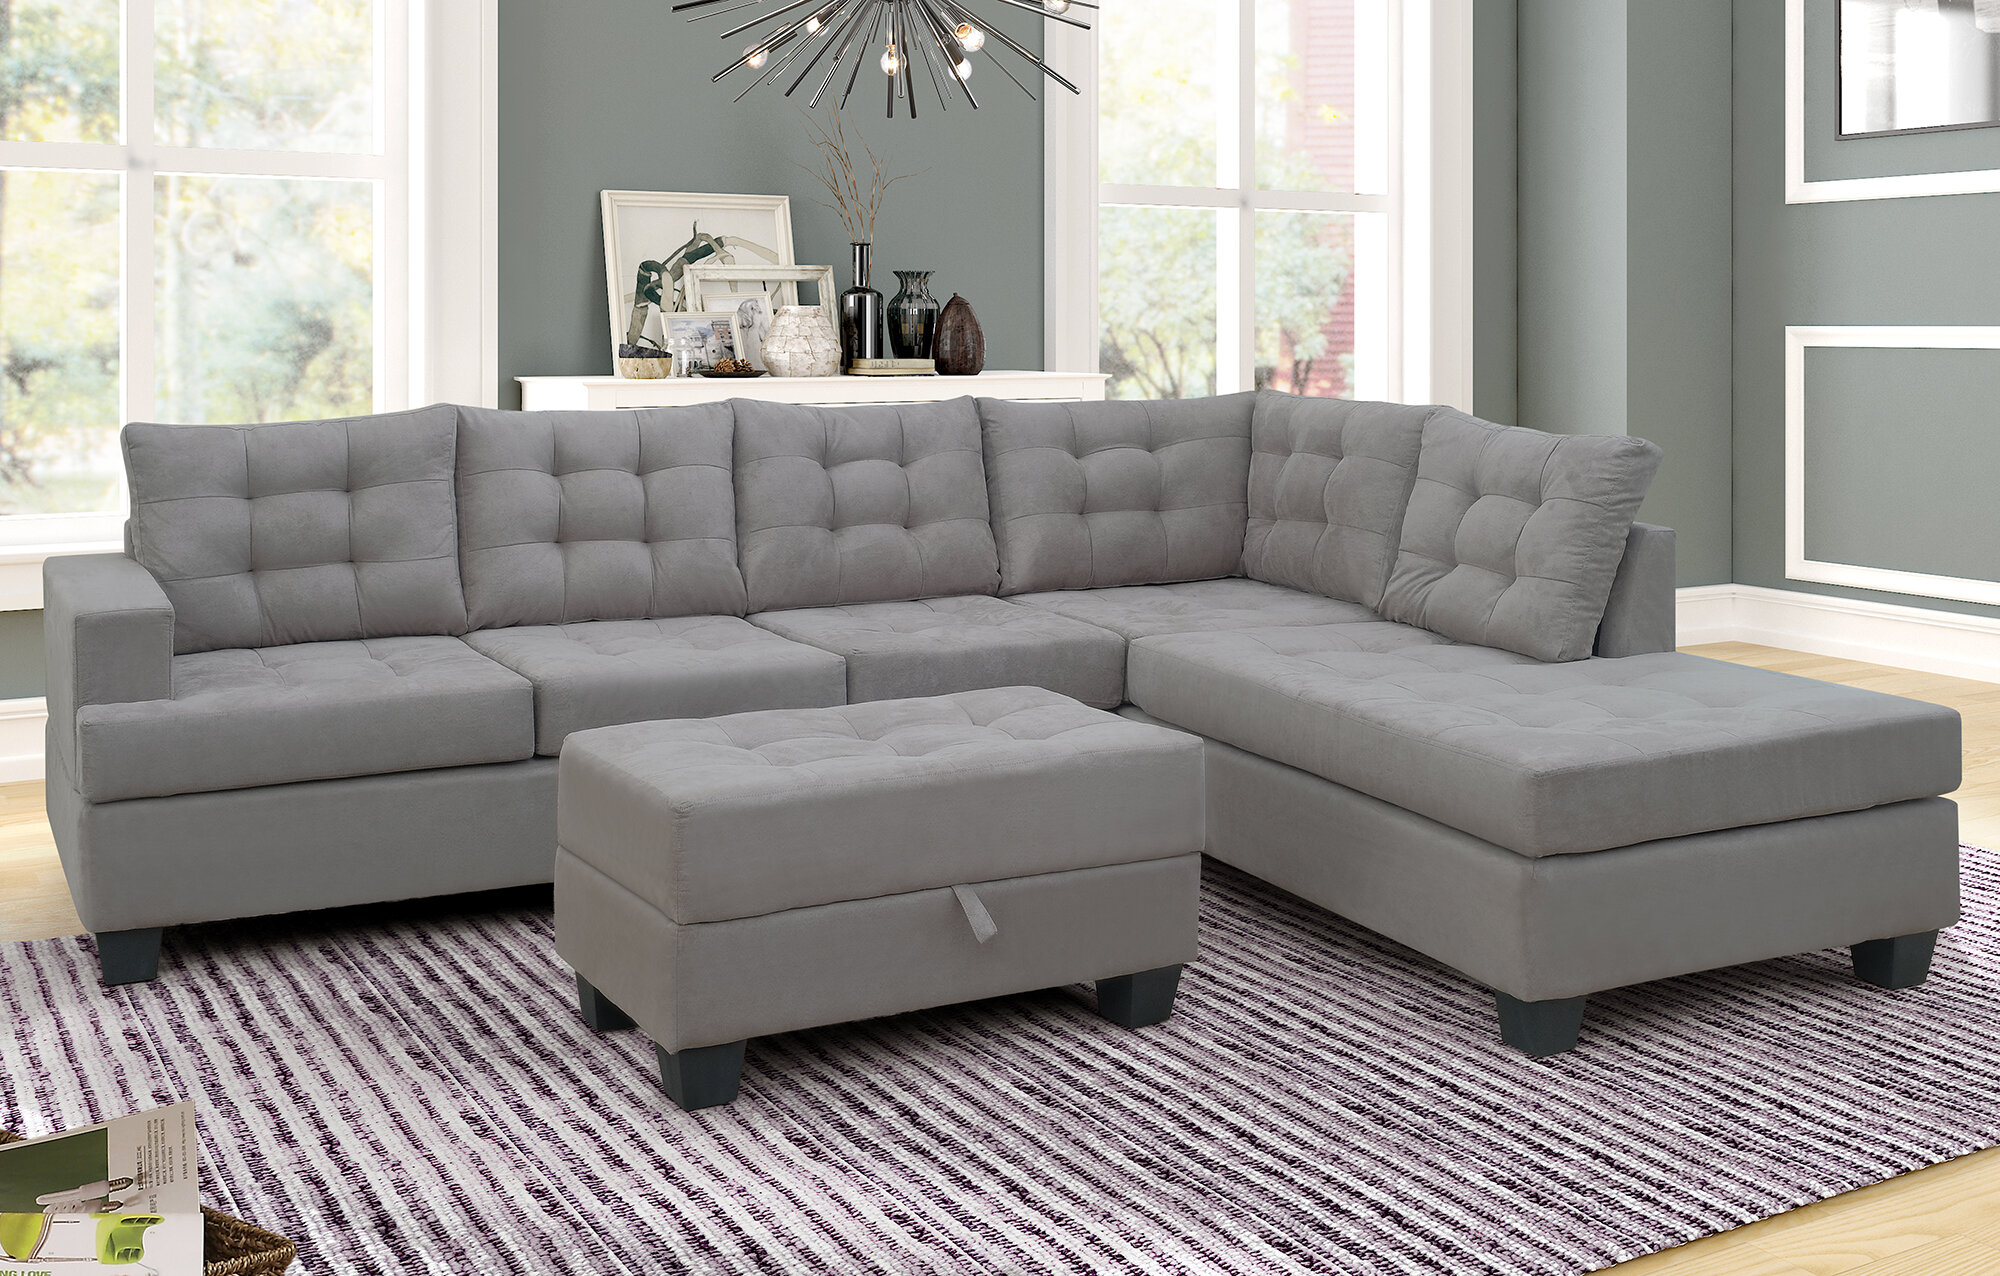 - Latitude Run Sofa 3-Piece Sectional Sofa With Chaise Lounge And